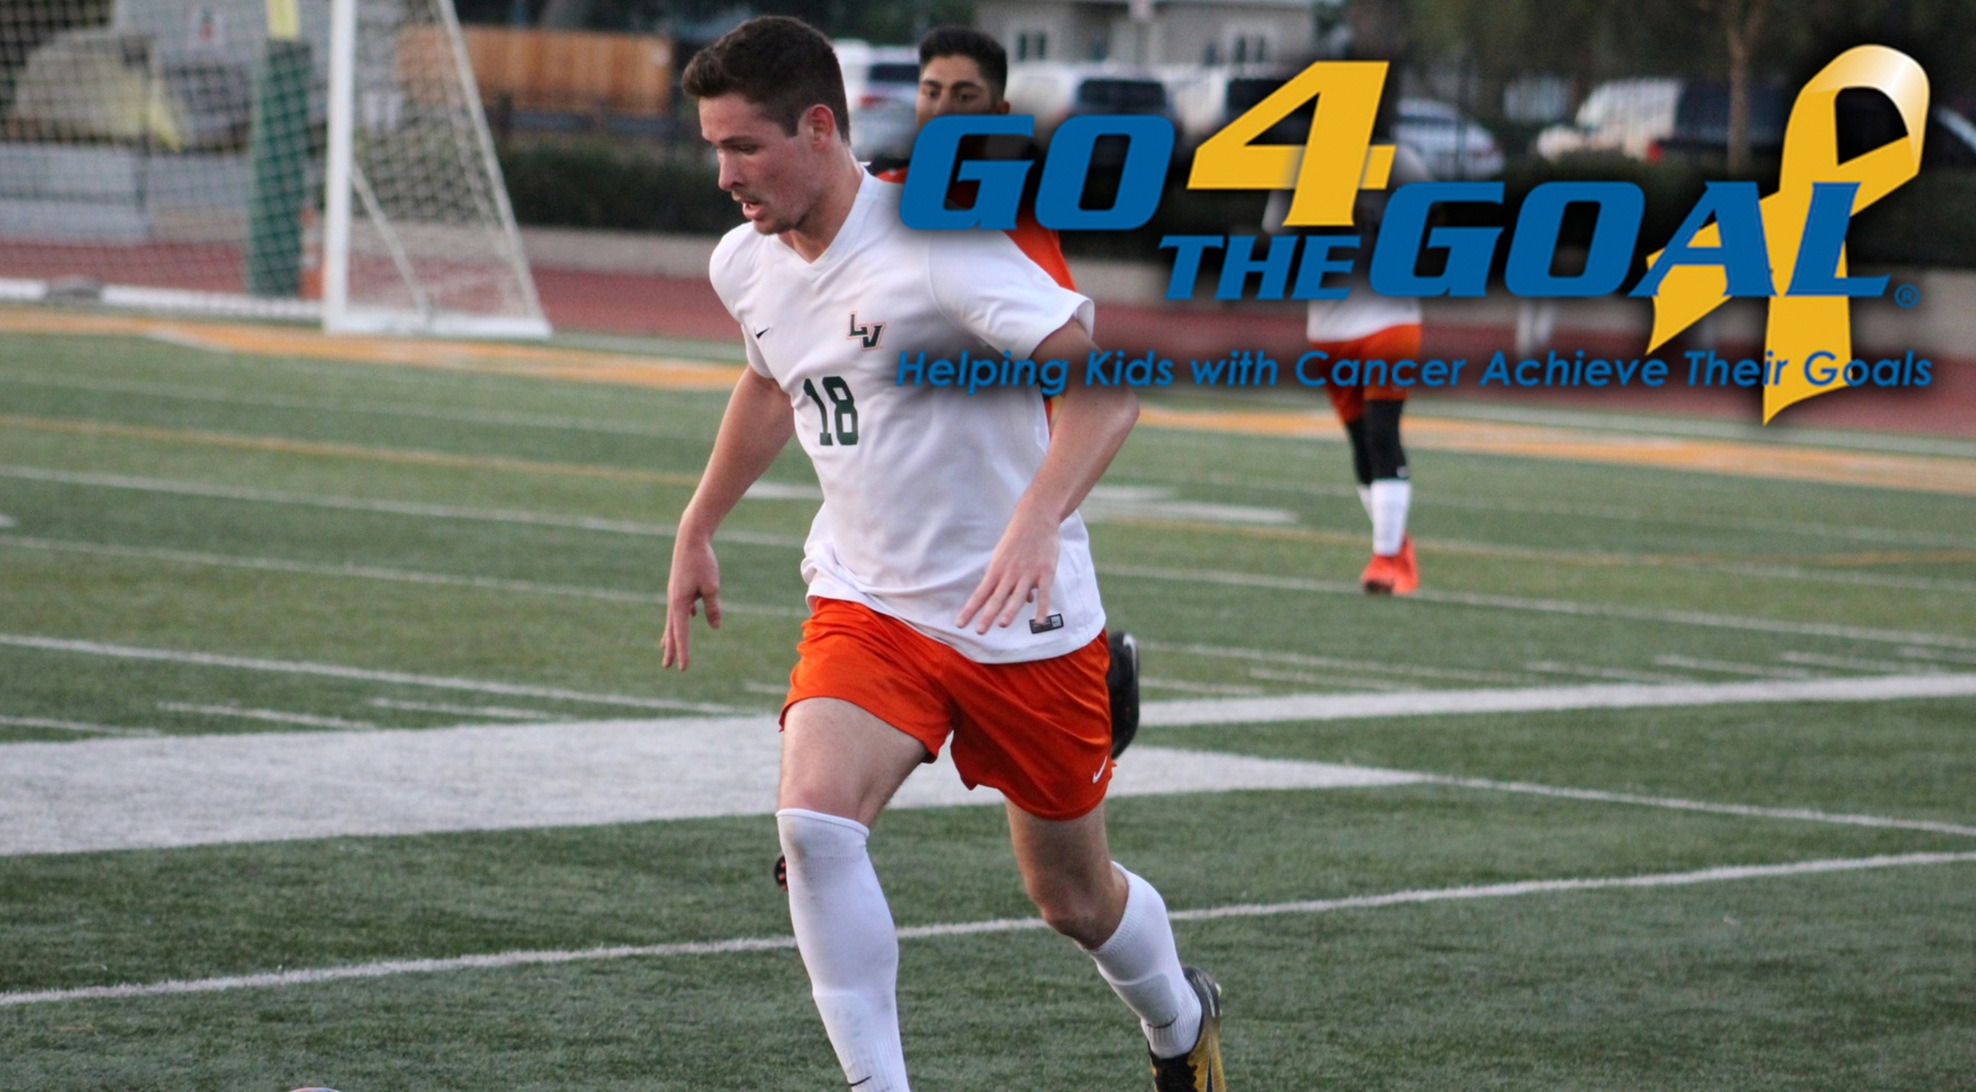 Men's Soccer, Sagehens team up to raise awareness for pediatric cancer